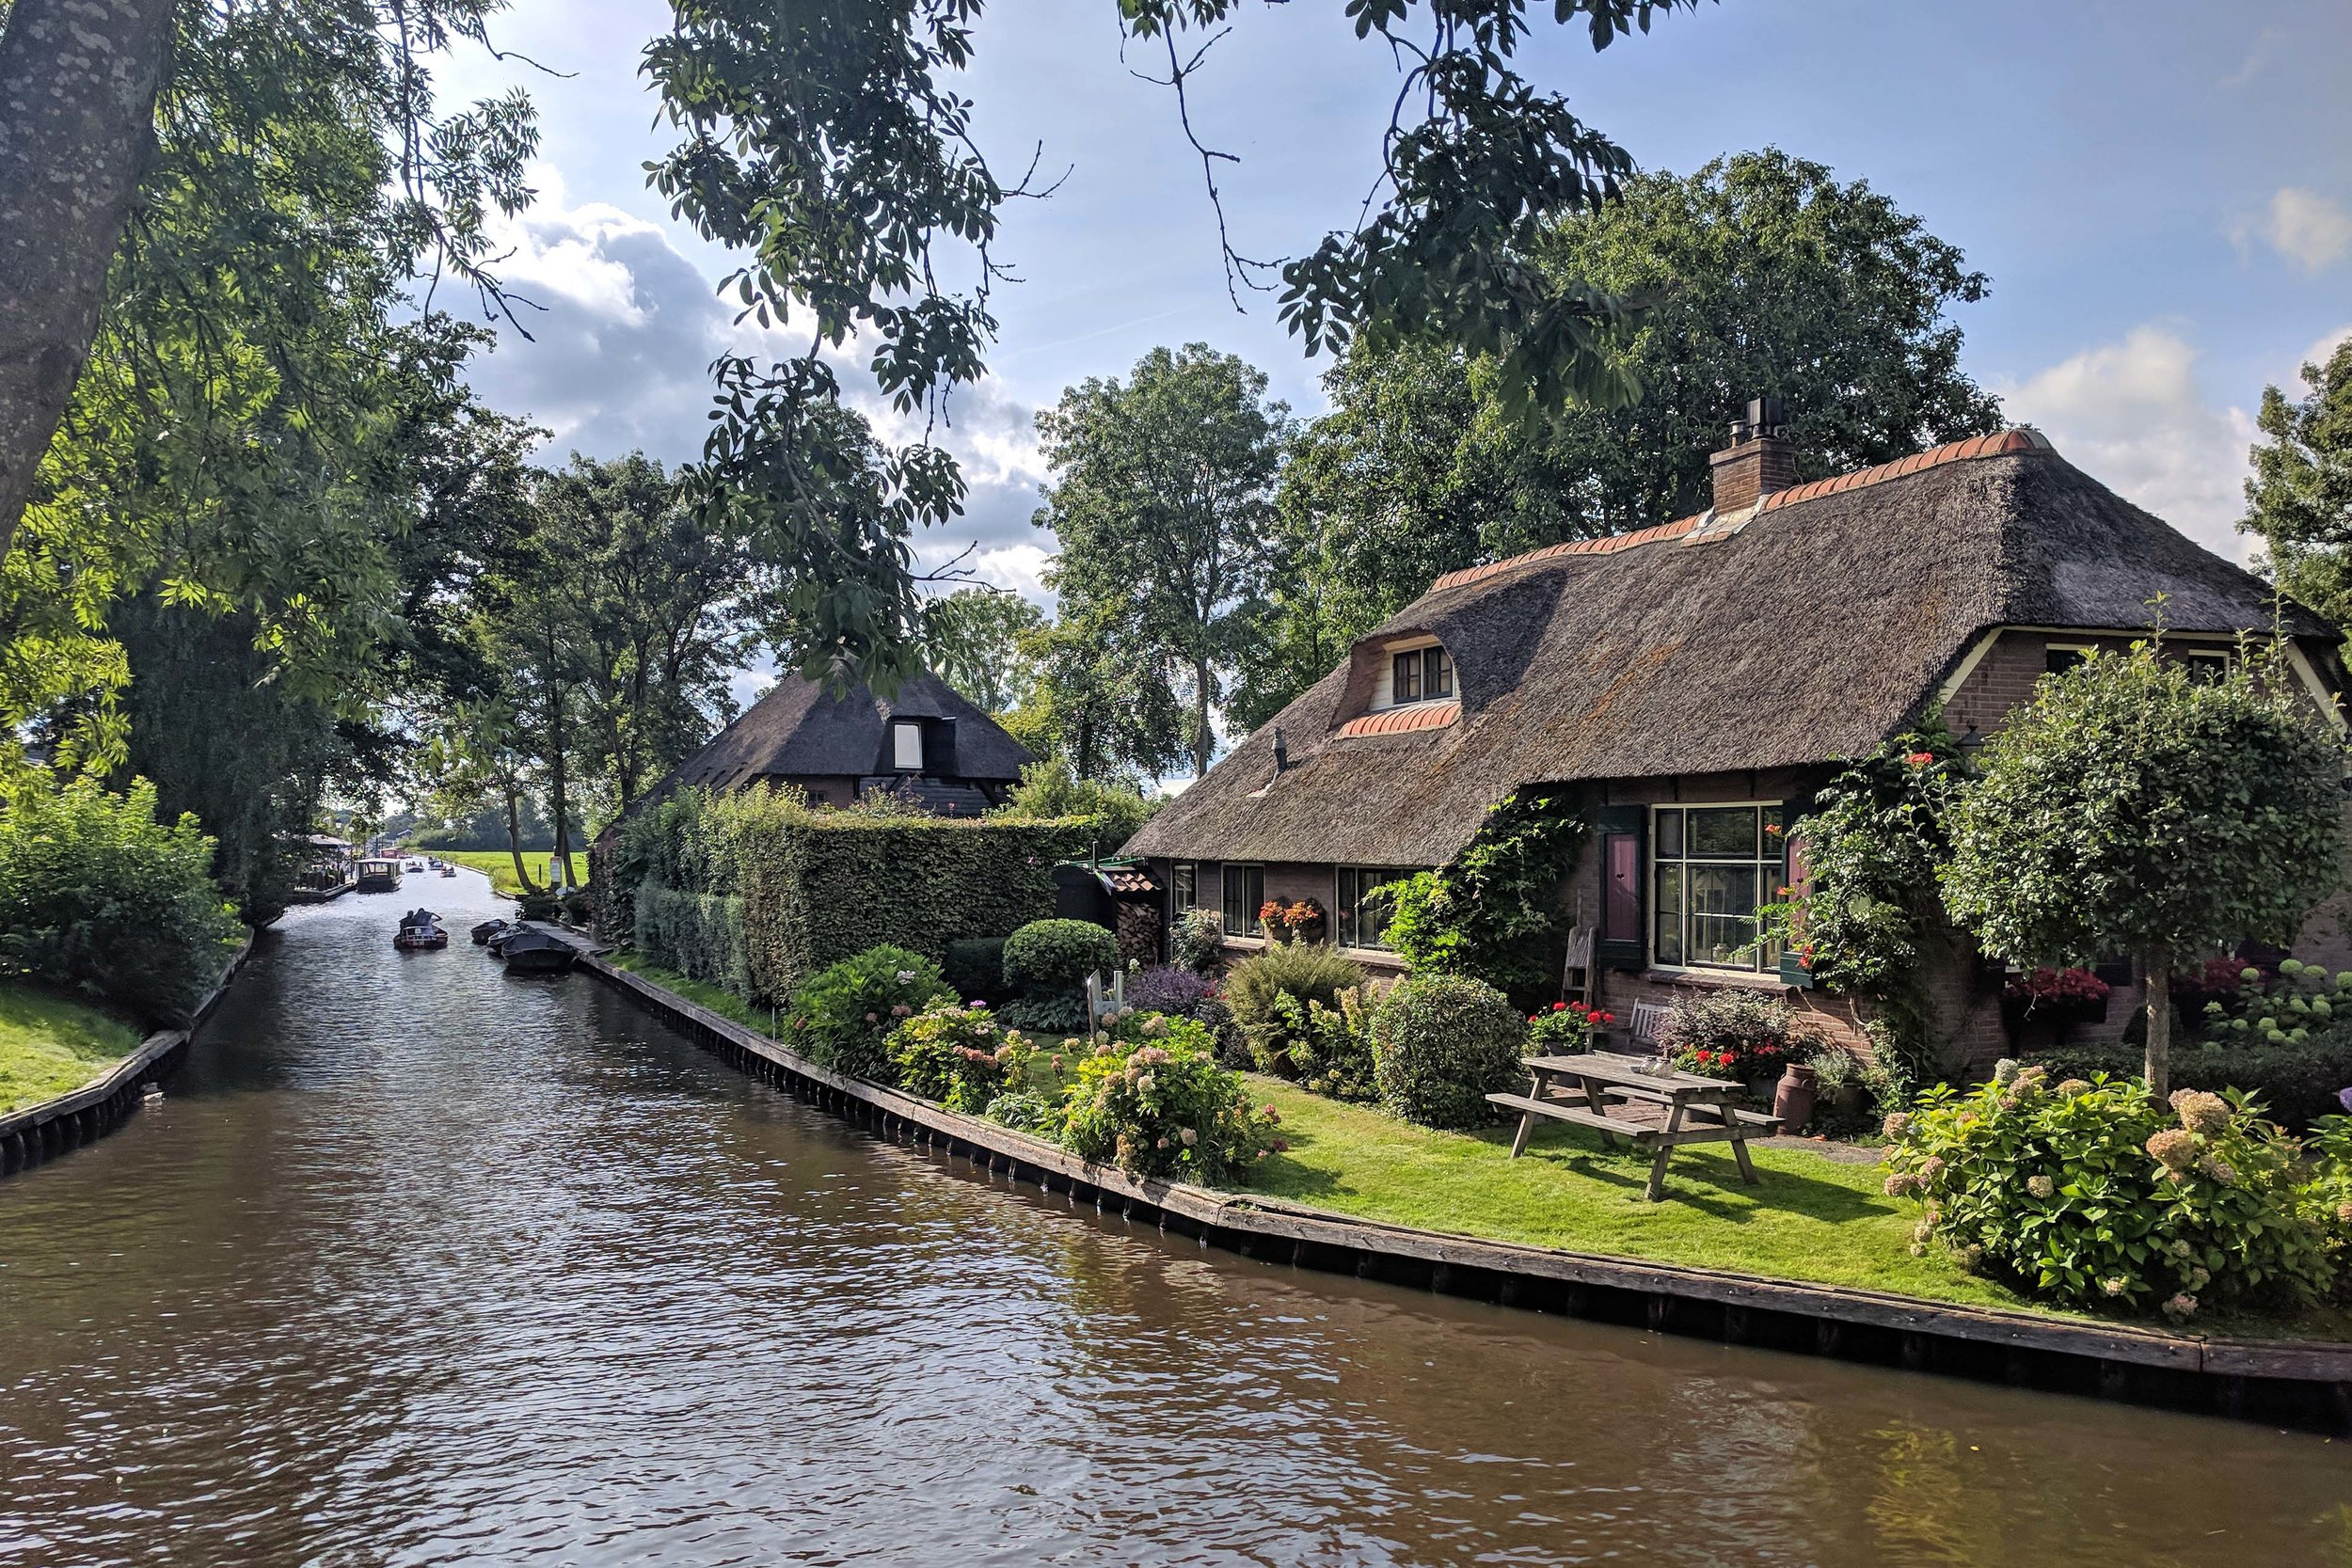 Ridiculously picturesque Giethoorn